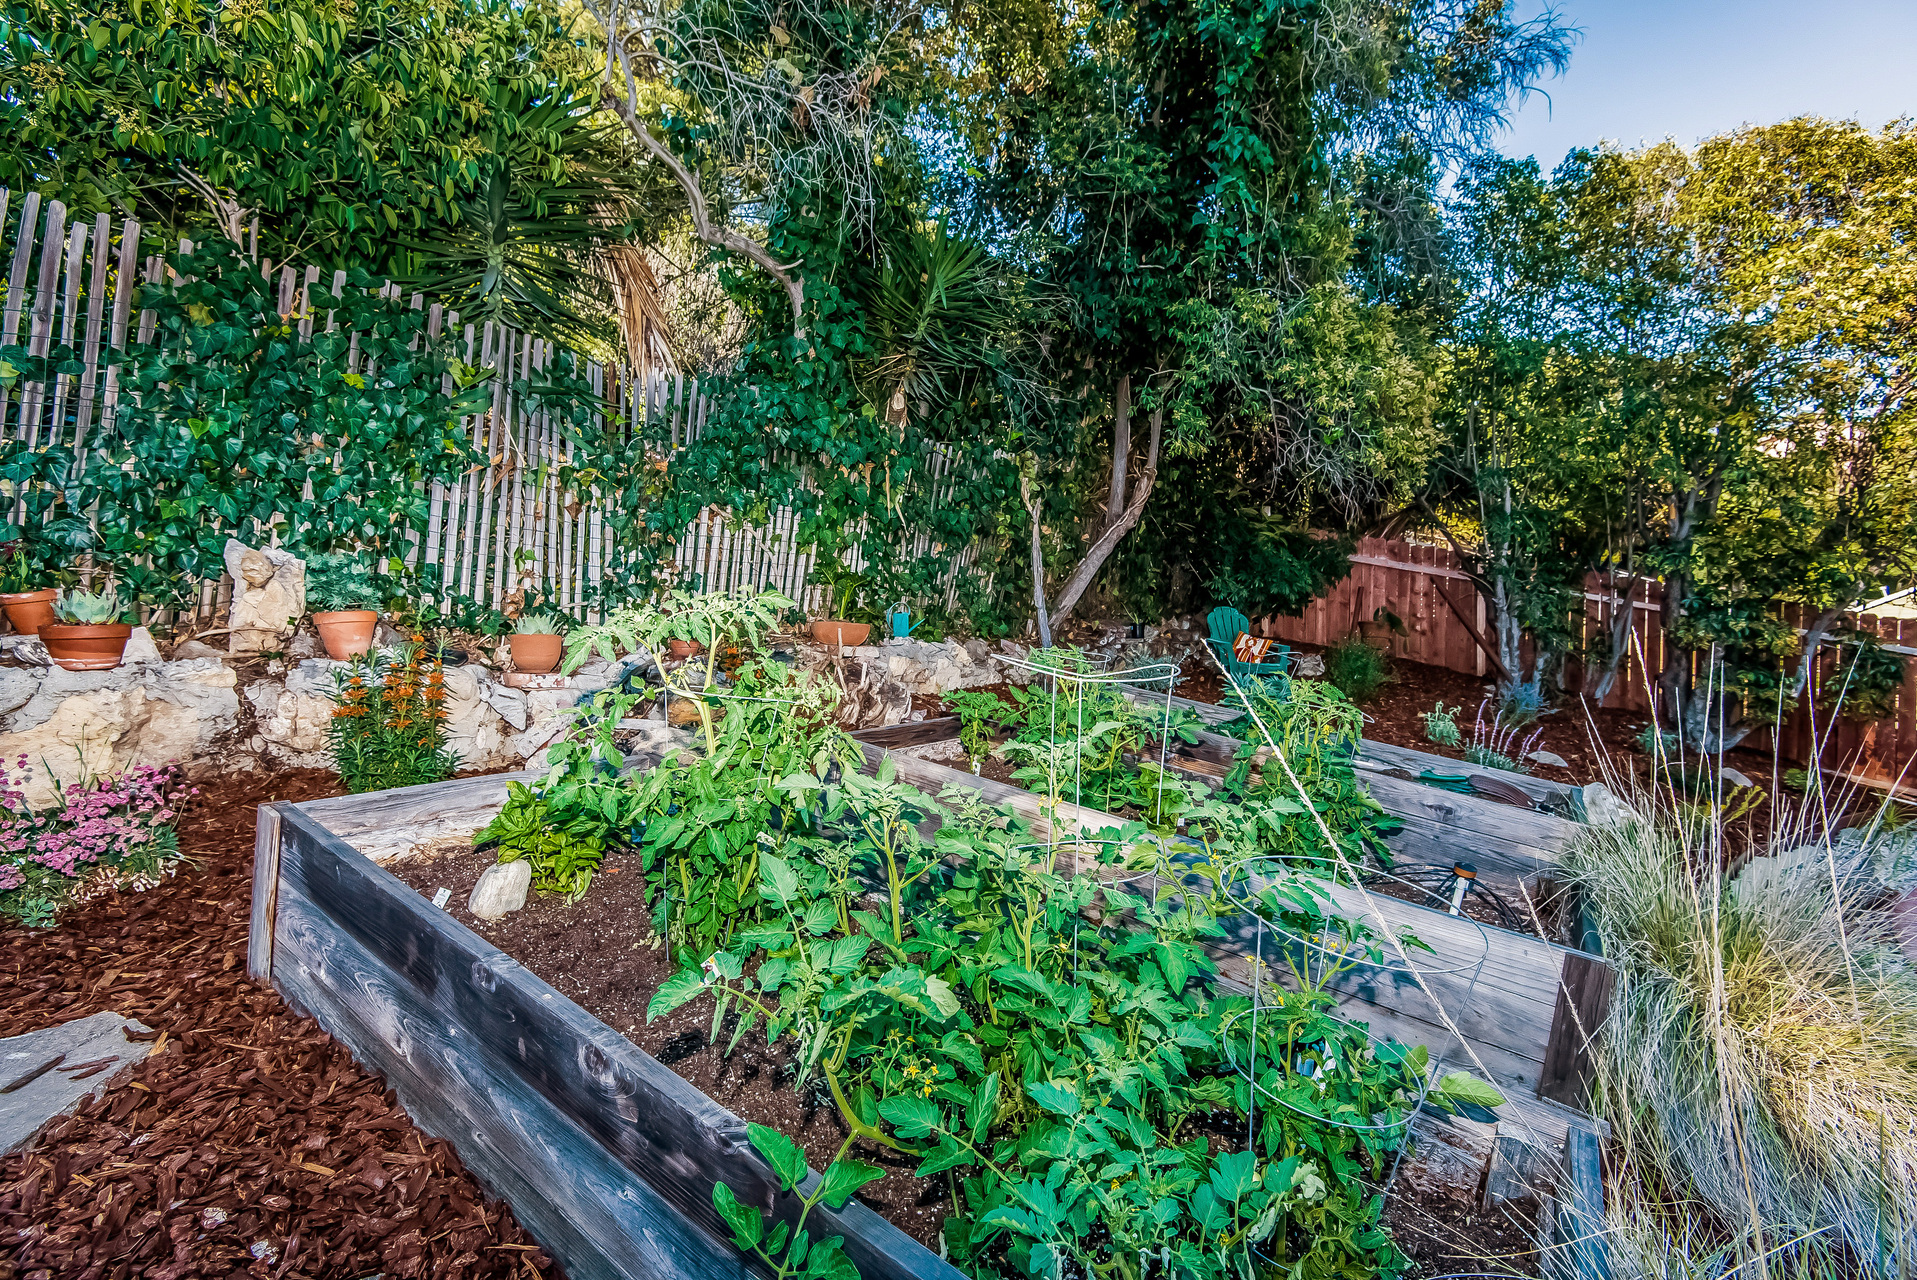 033-Upper_garden_in_backyard-2907678-medium.jpg